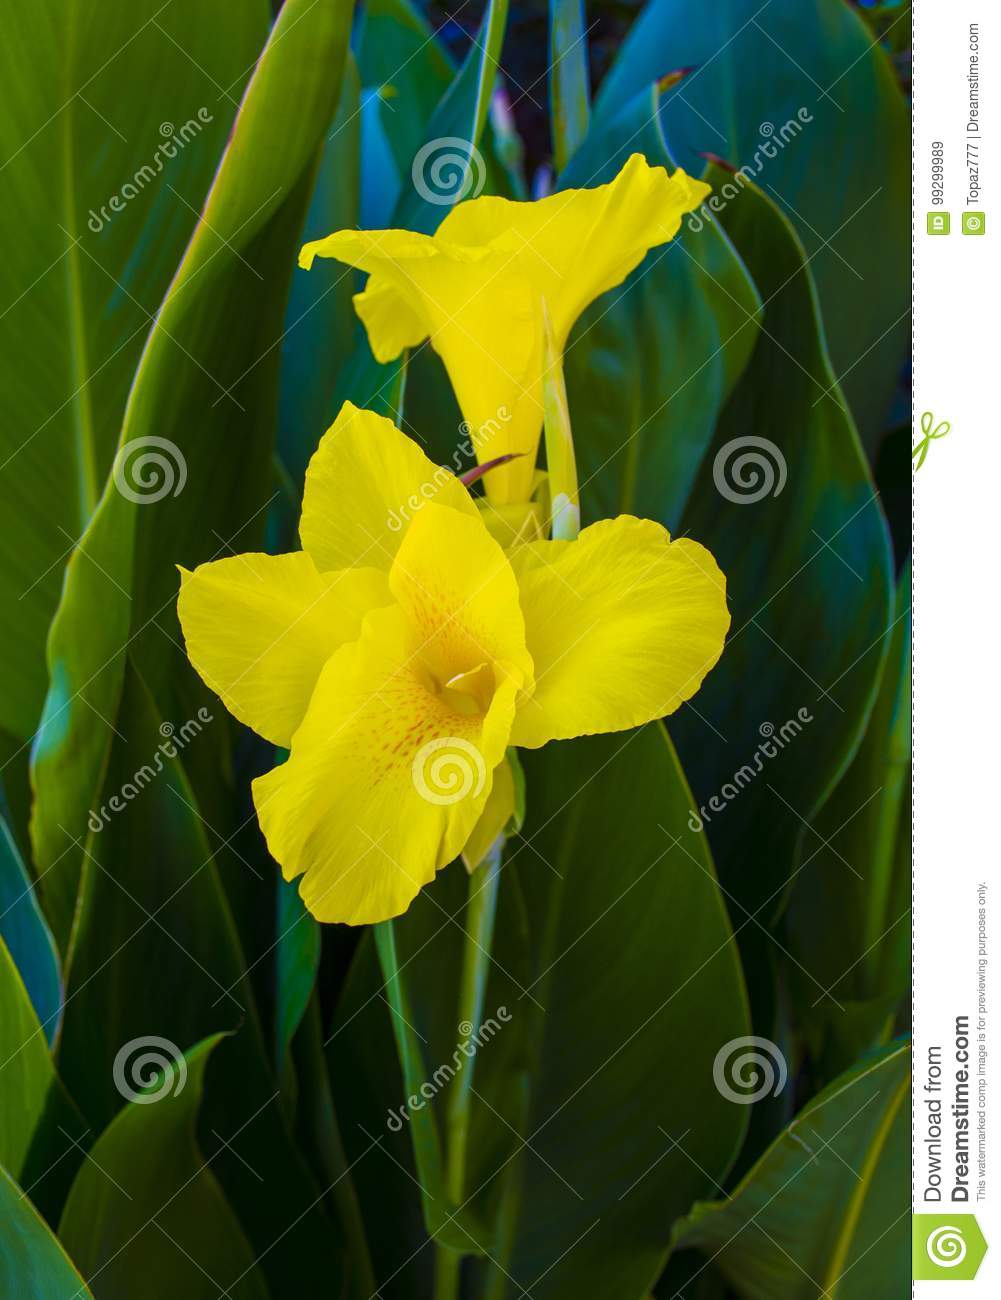 Canna flowers yellow canna flower in the garden stock image canna flowers yellow canna flower in the garden mightylinksfo